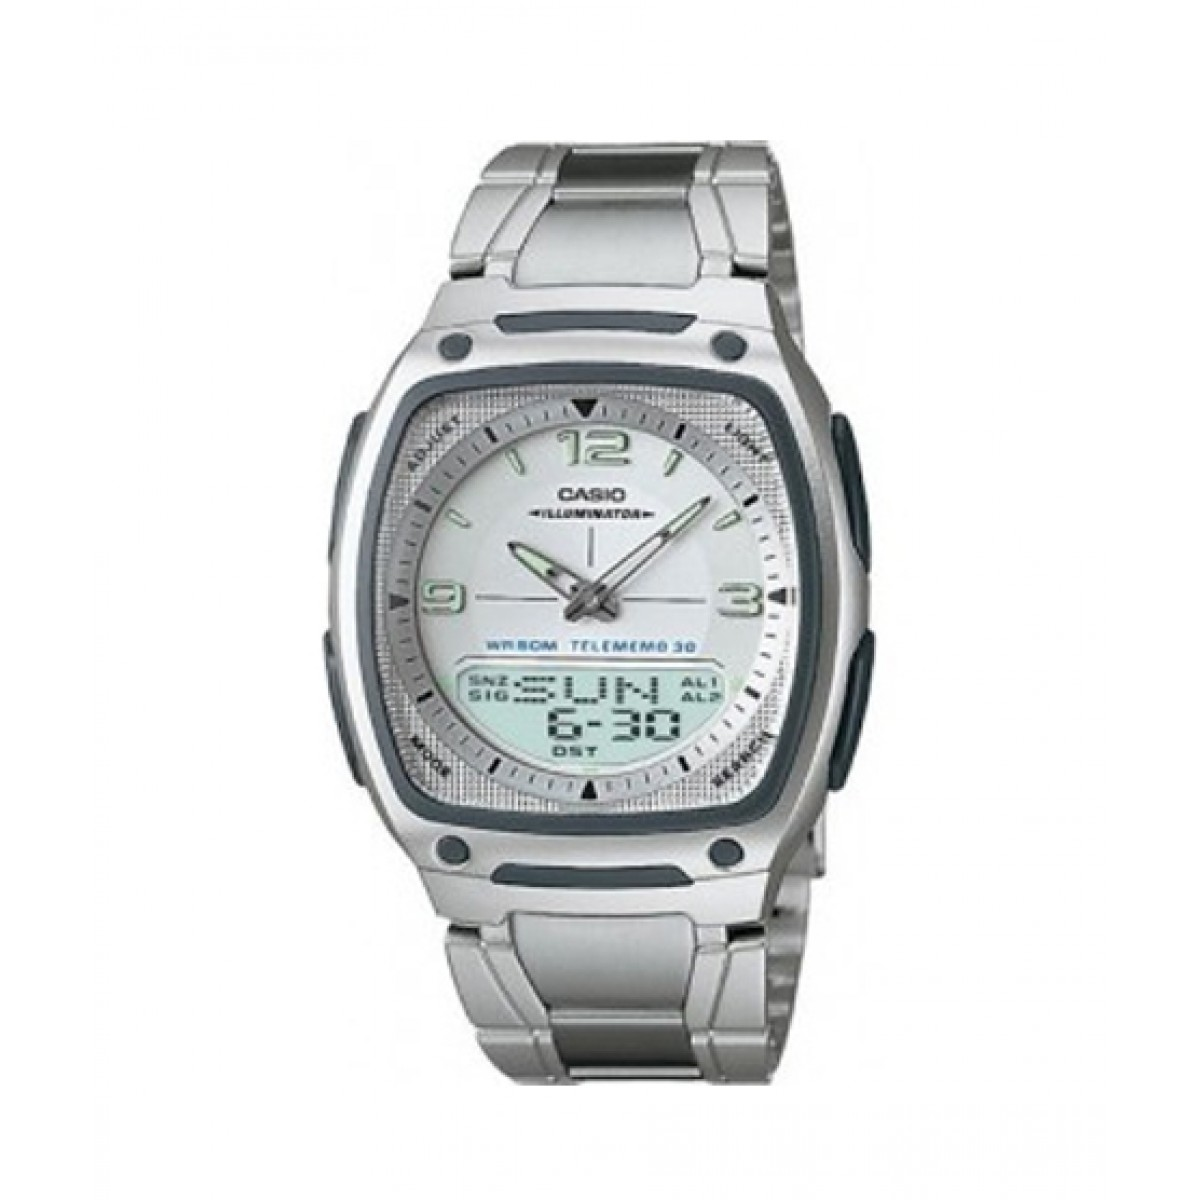 049f9411e Casio Youth Series Men s Watch Price in Pakistan